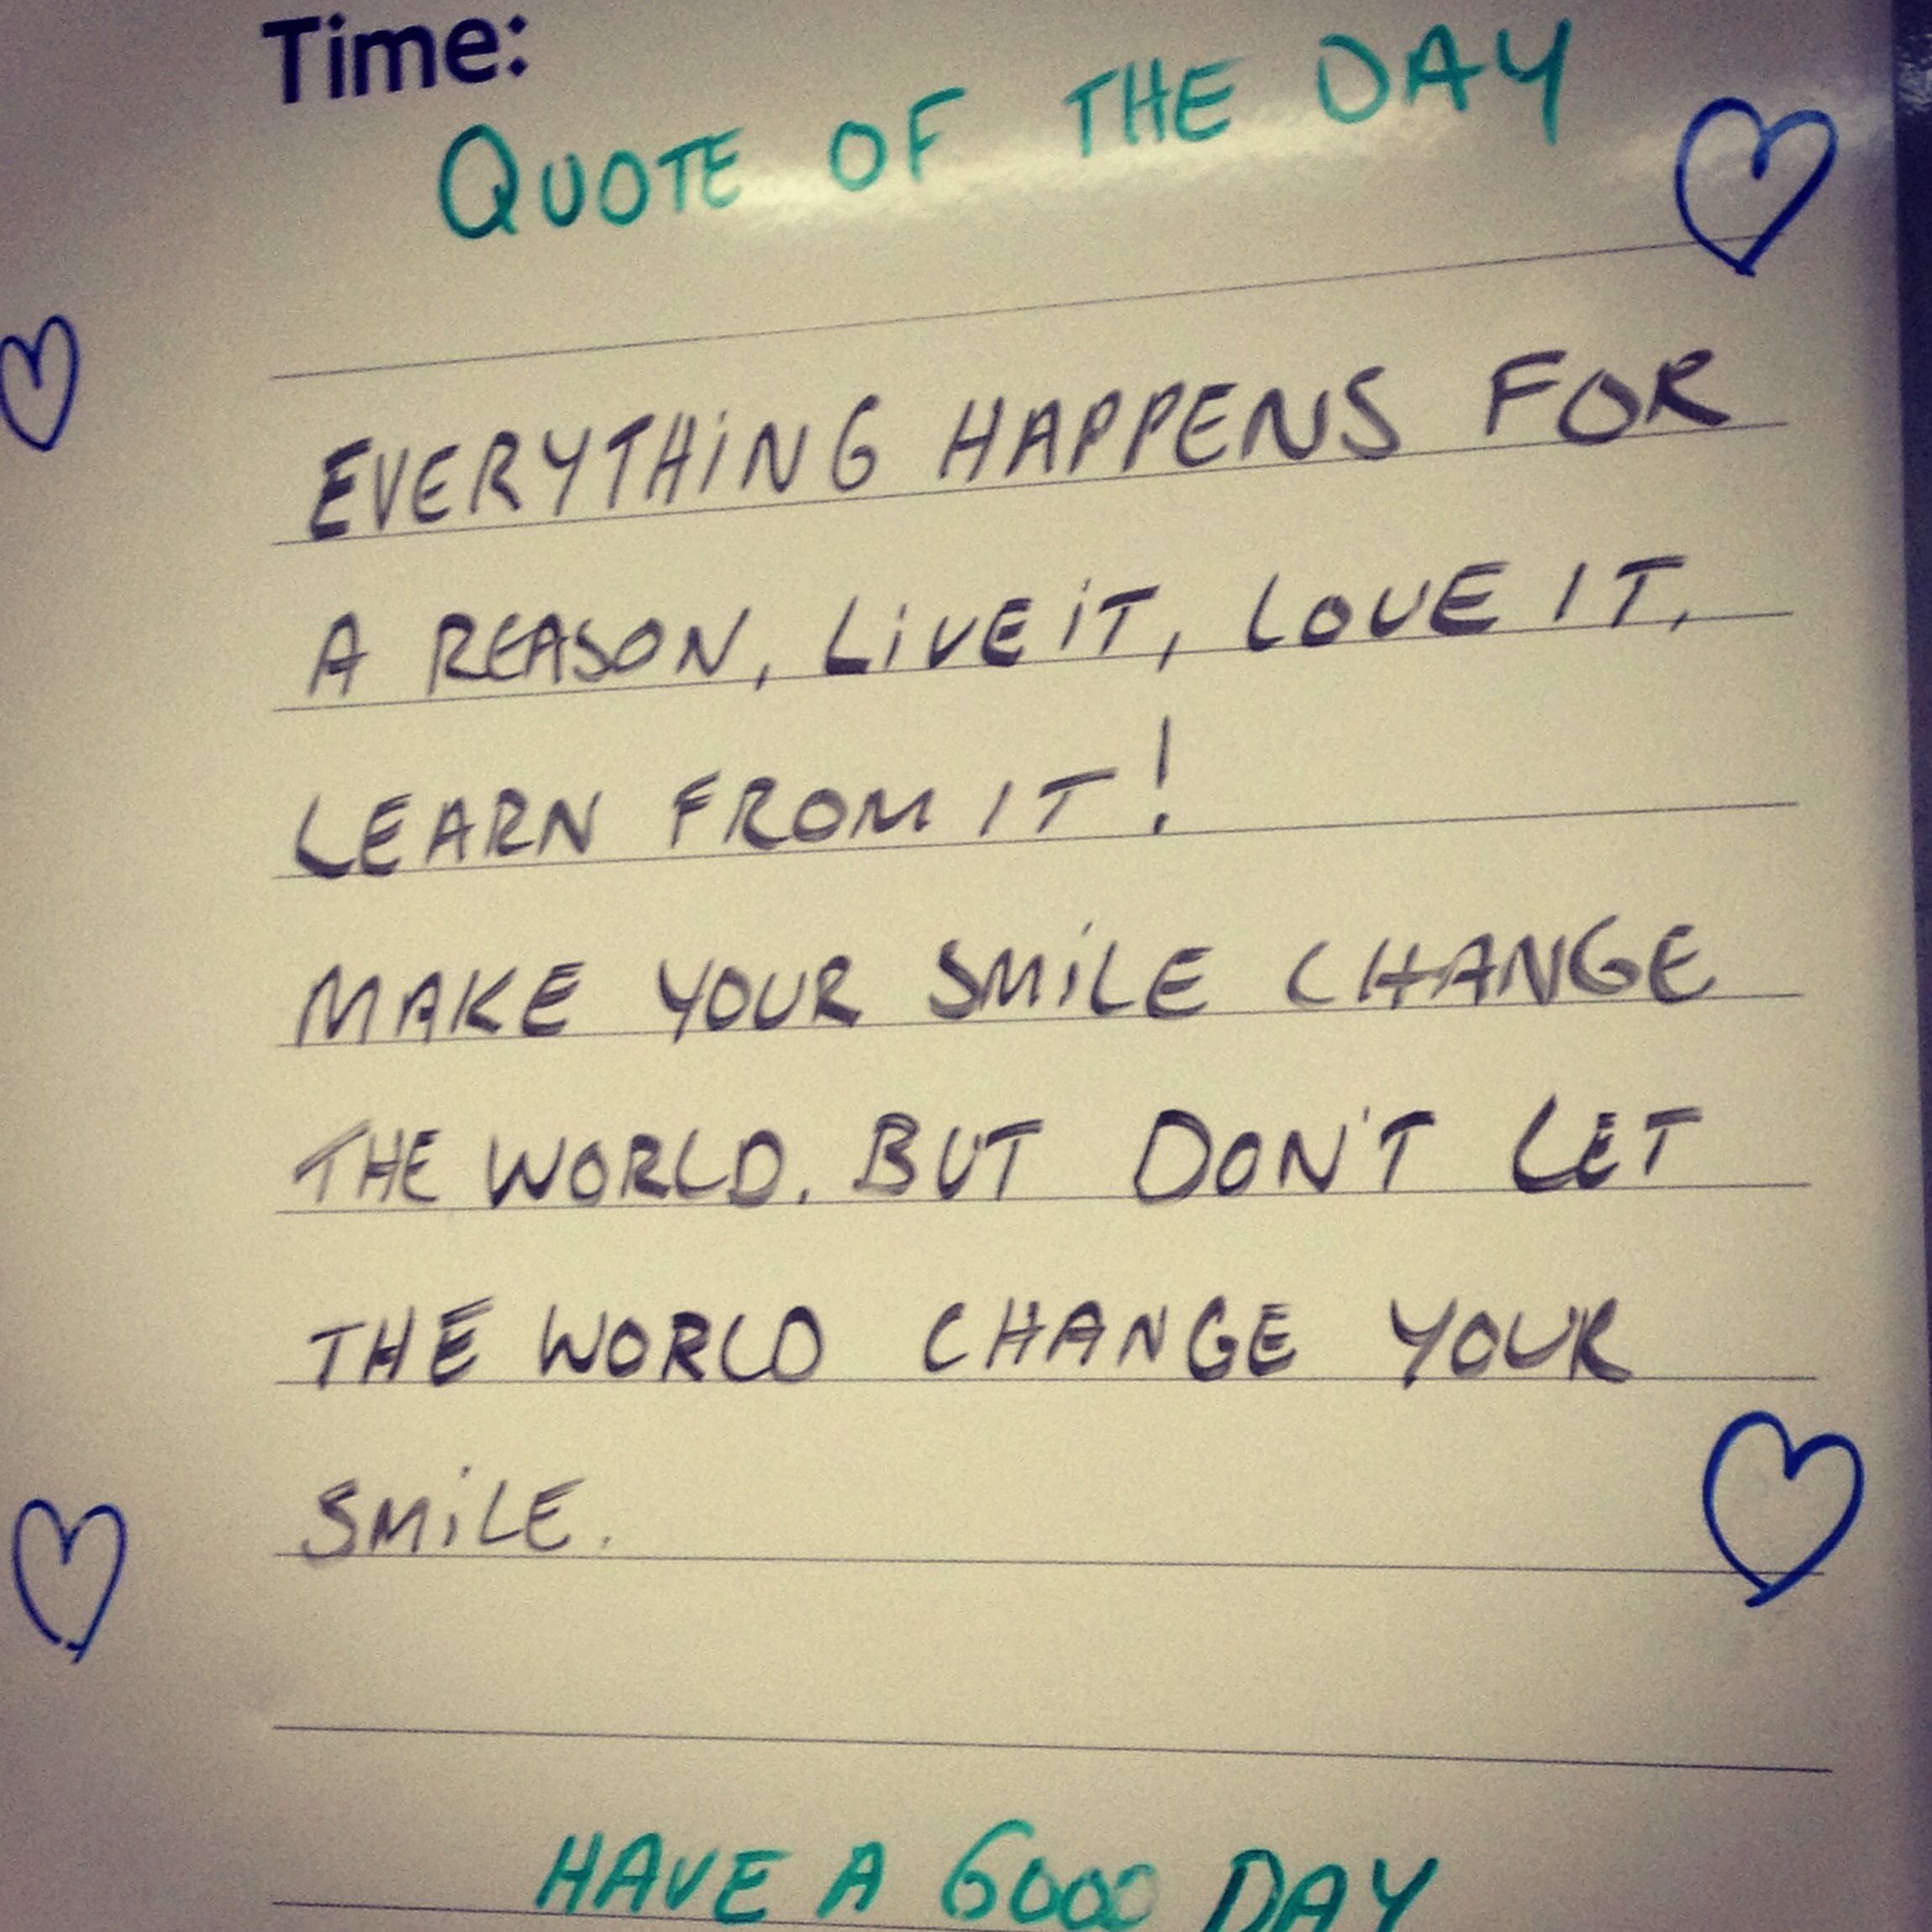 #life #smile #quotes